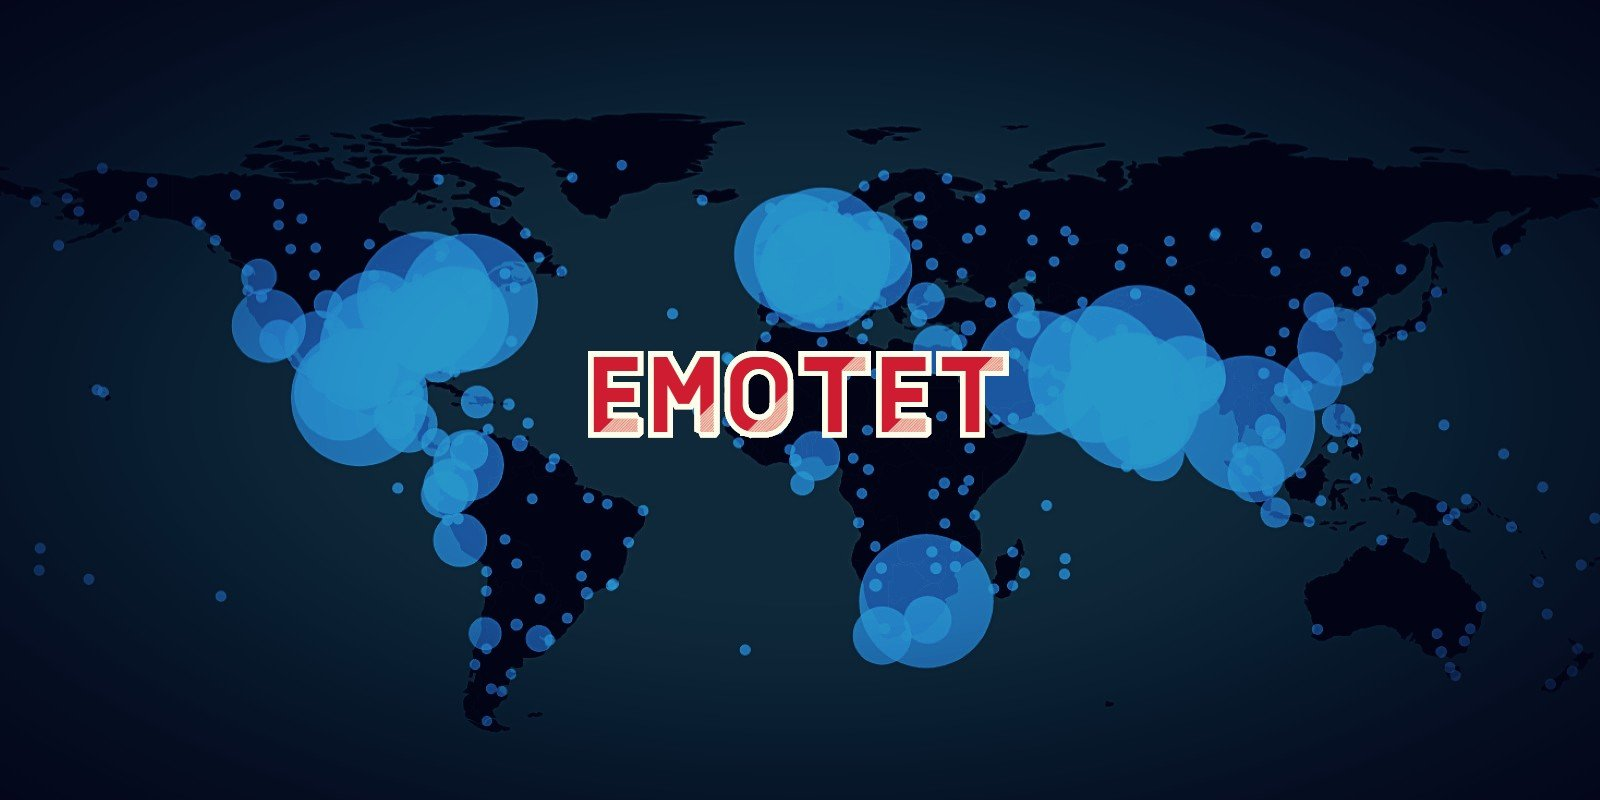 Emotet Campaign Used Parked Domains To Deliver Malware Payloads